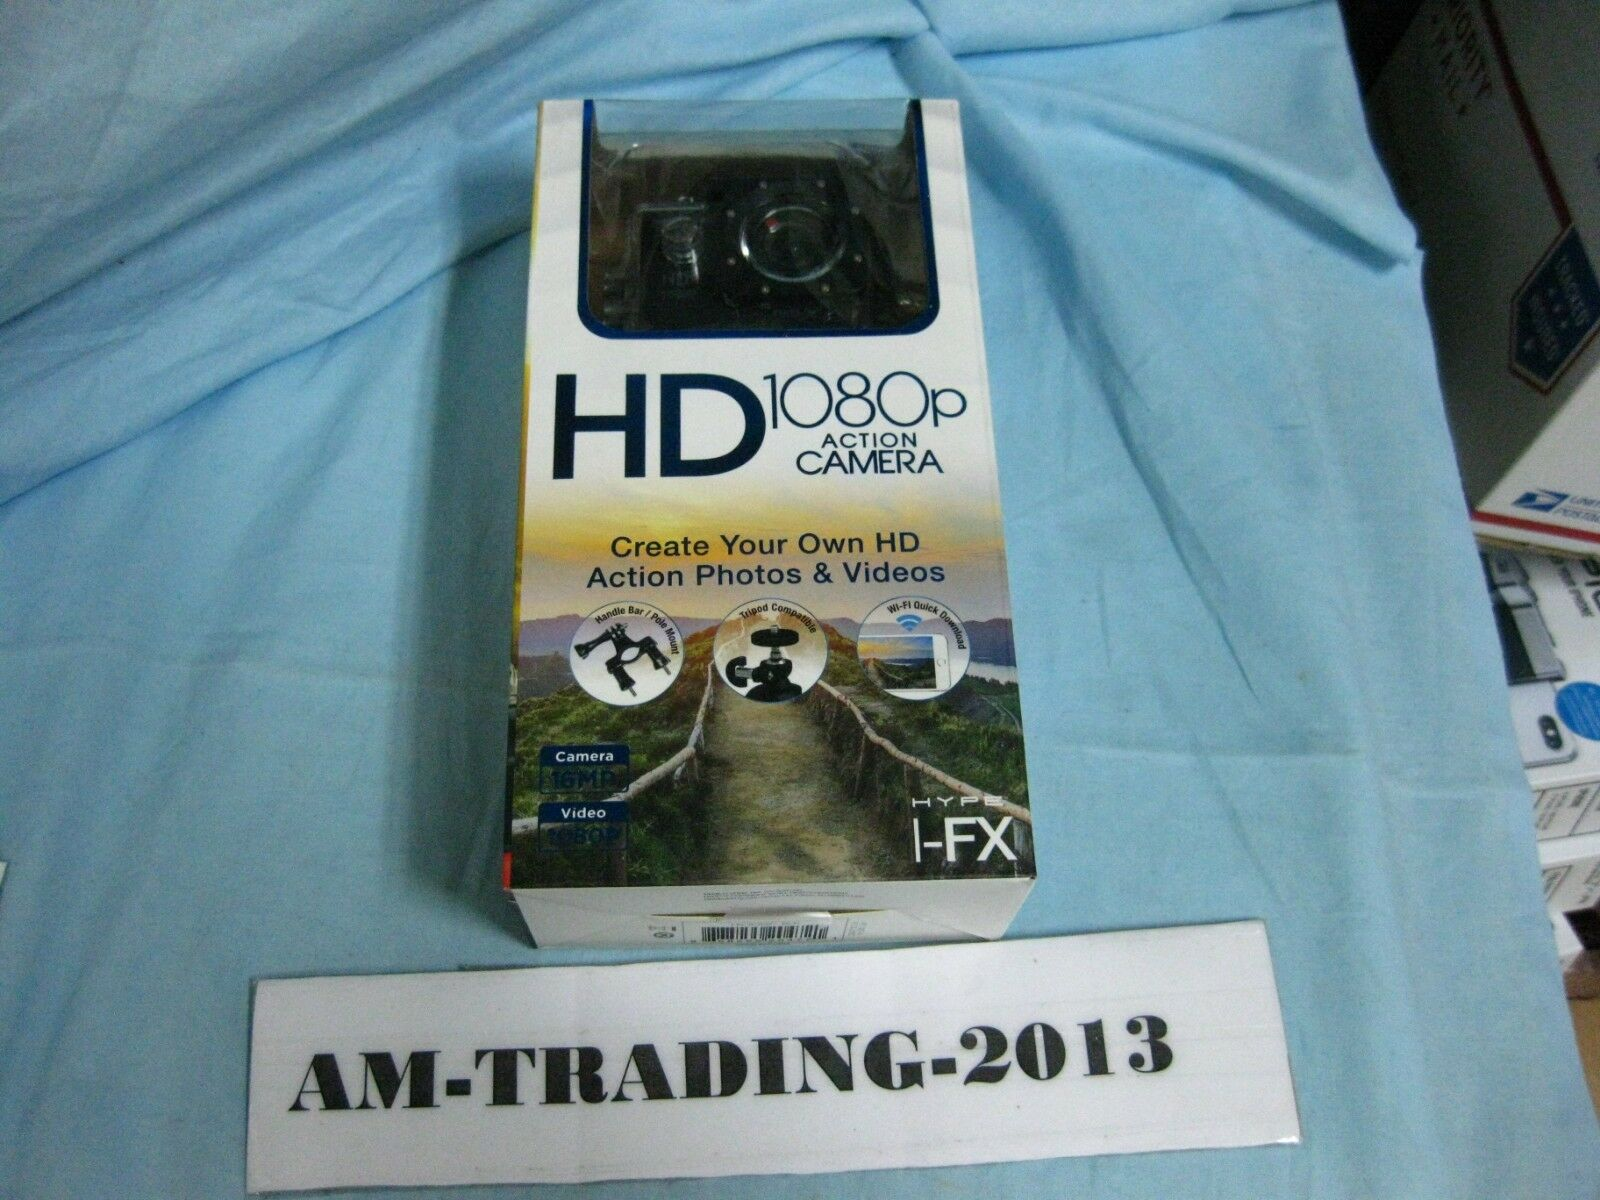 Brand New Hype I-FX Action Camera, HD 1080p, 16MP